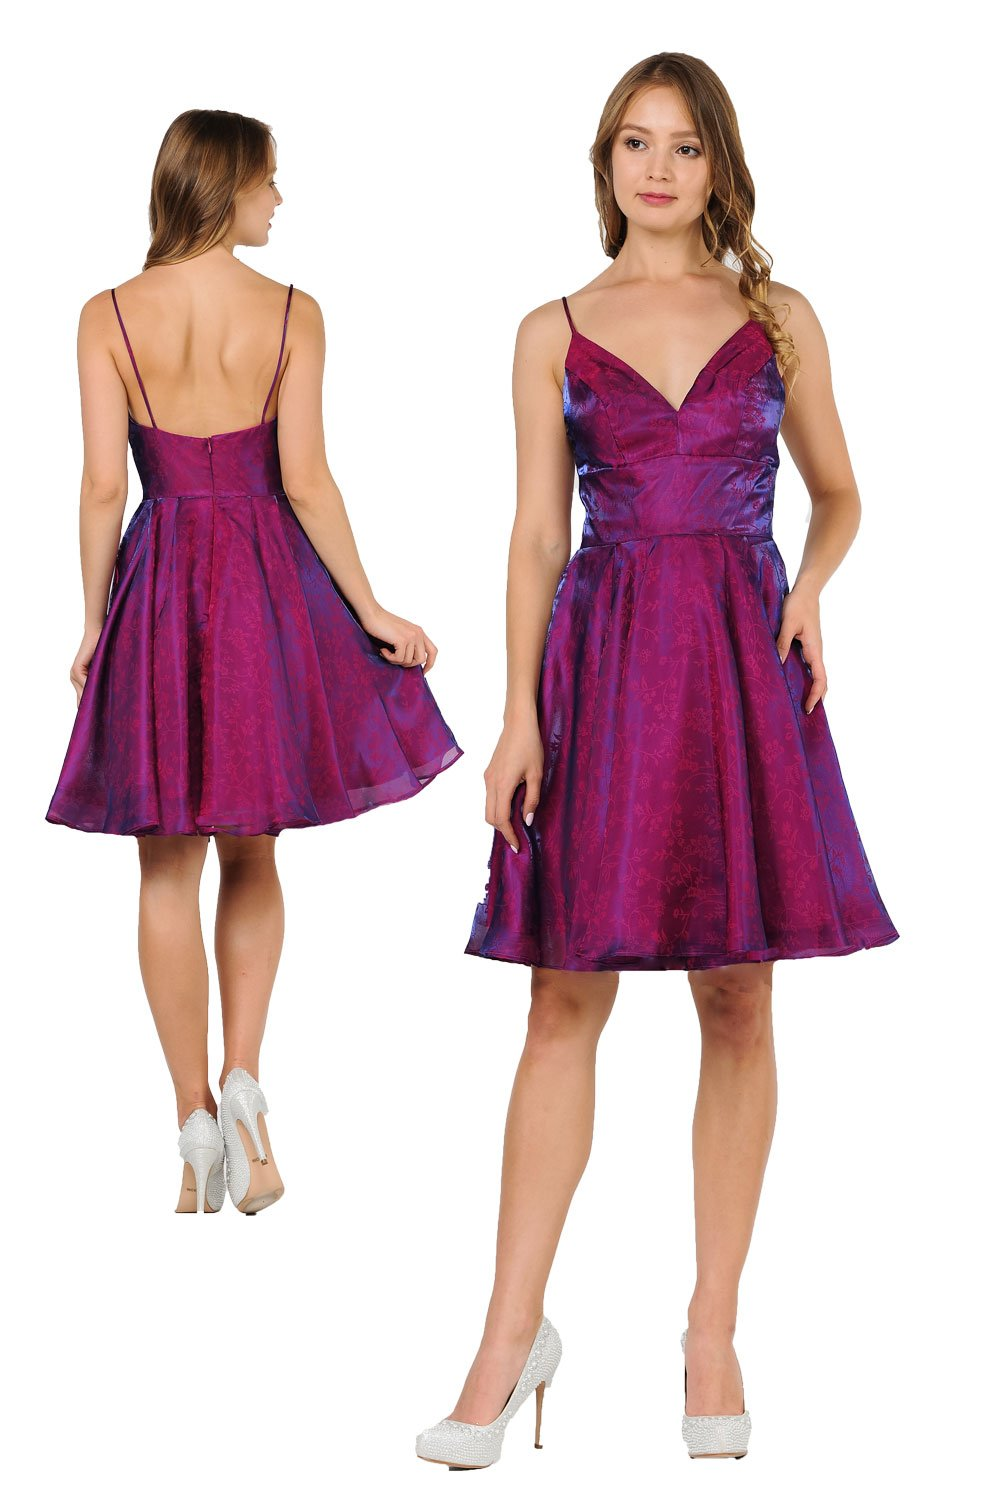 a8a97867320 Homecoming Dresses At Stores Near Me - Data Dynamic AG